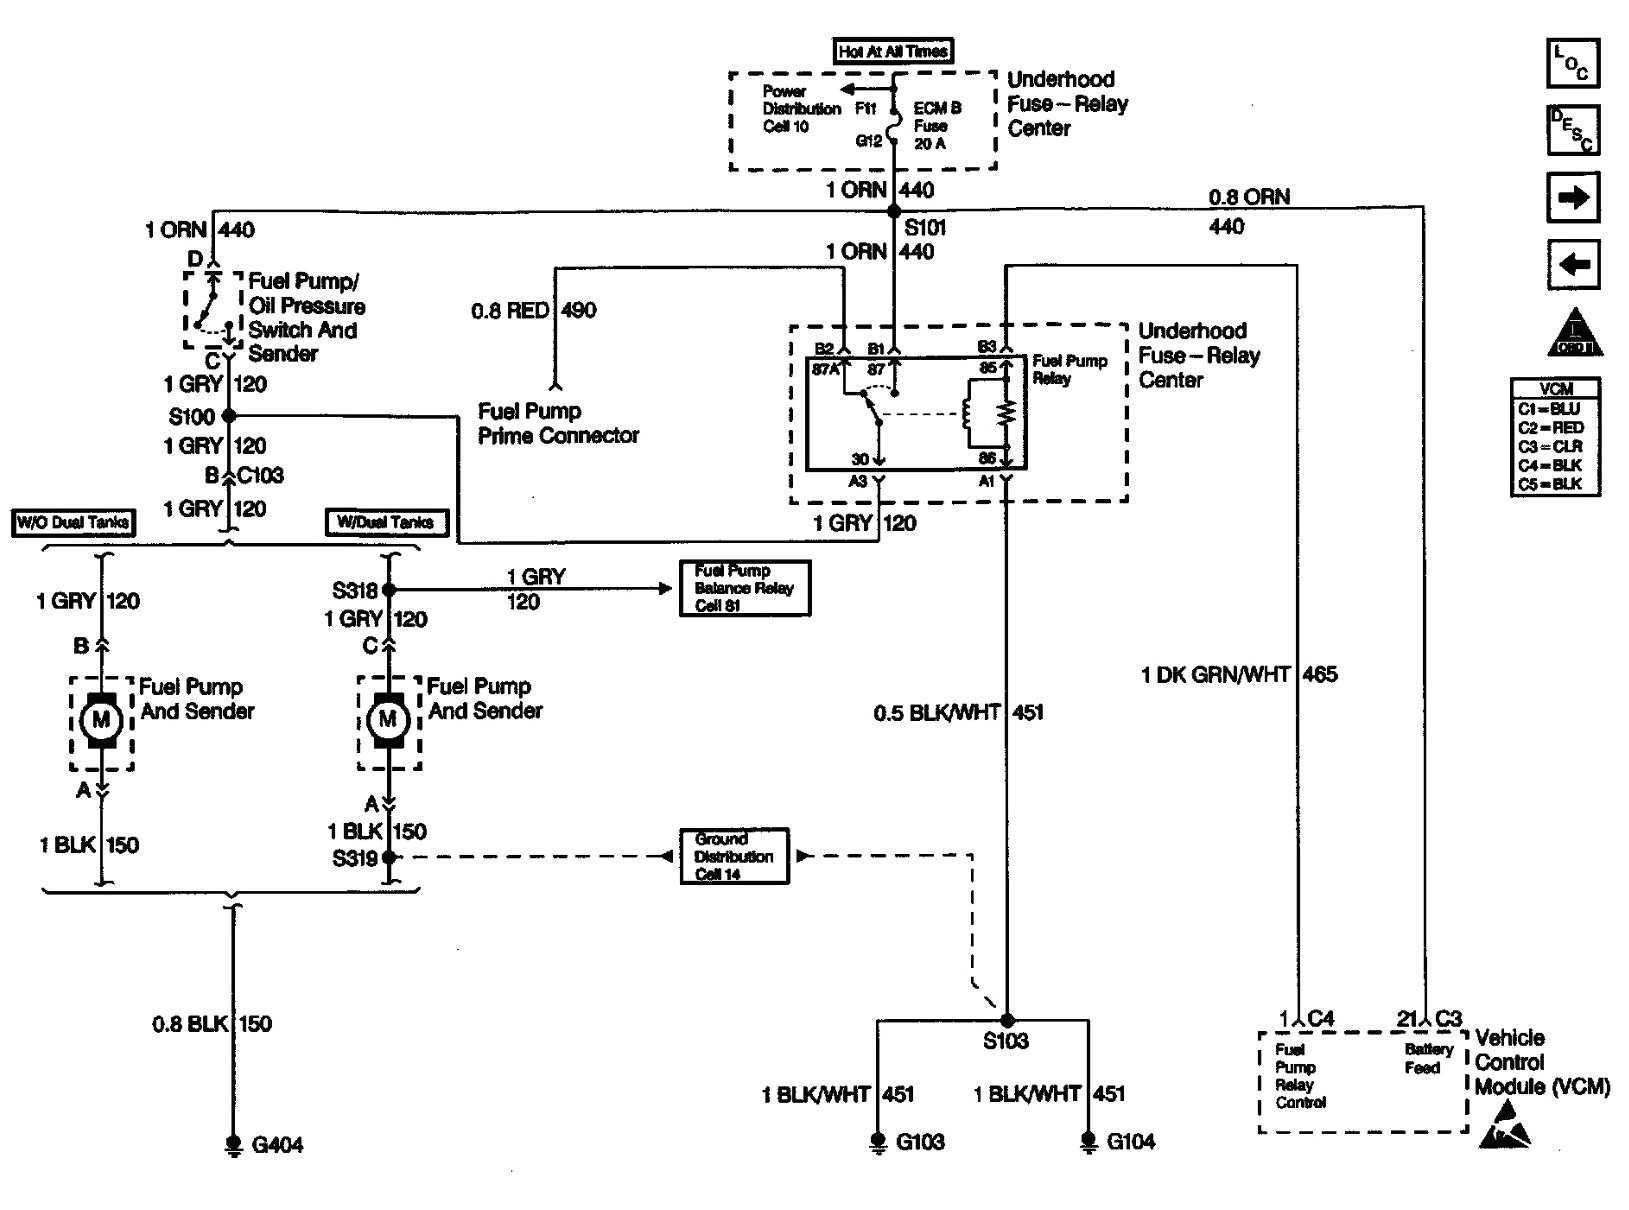 1998 chevy truck wiring diagram - Wiring Diagram